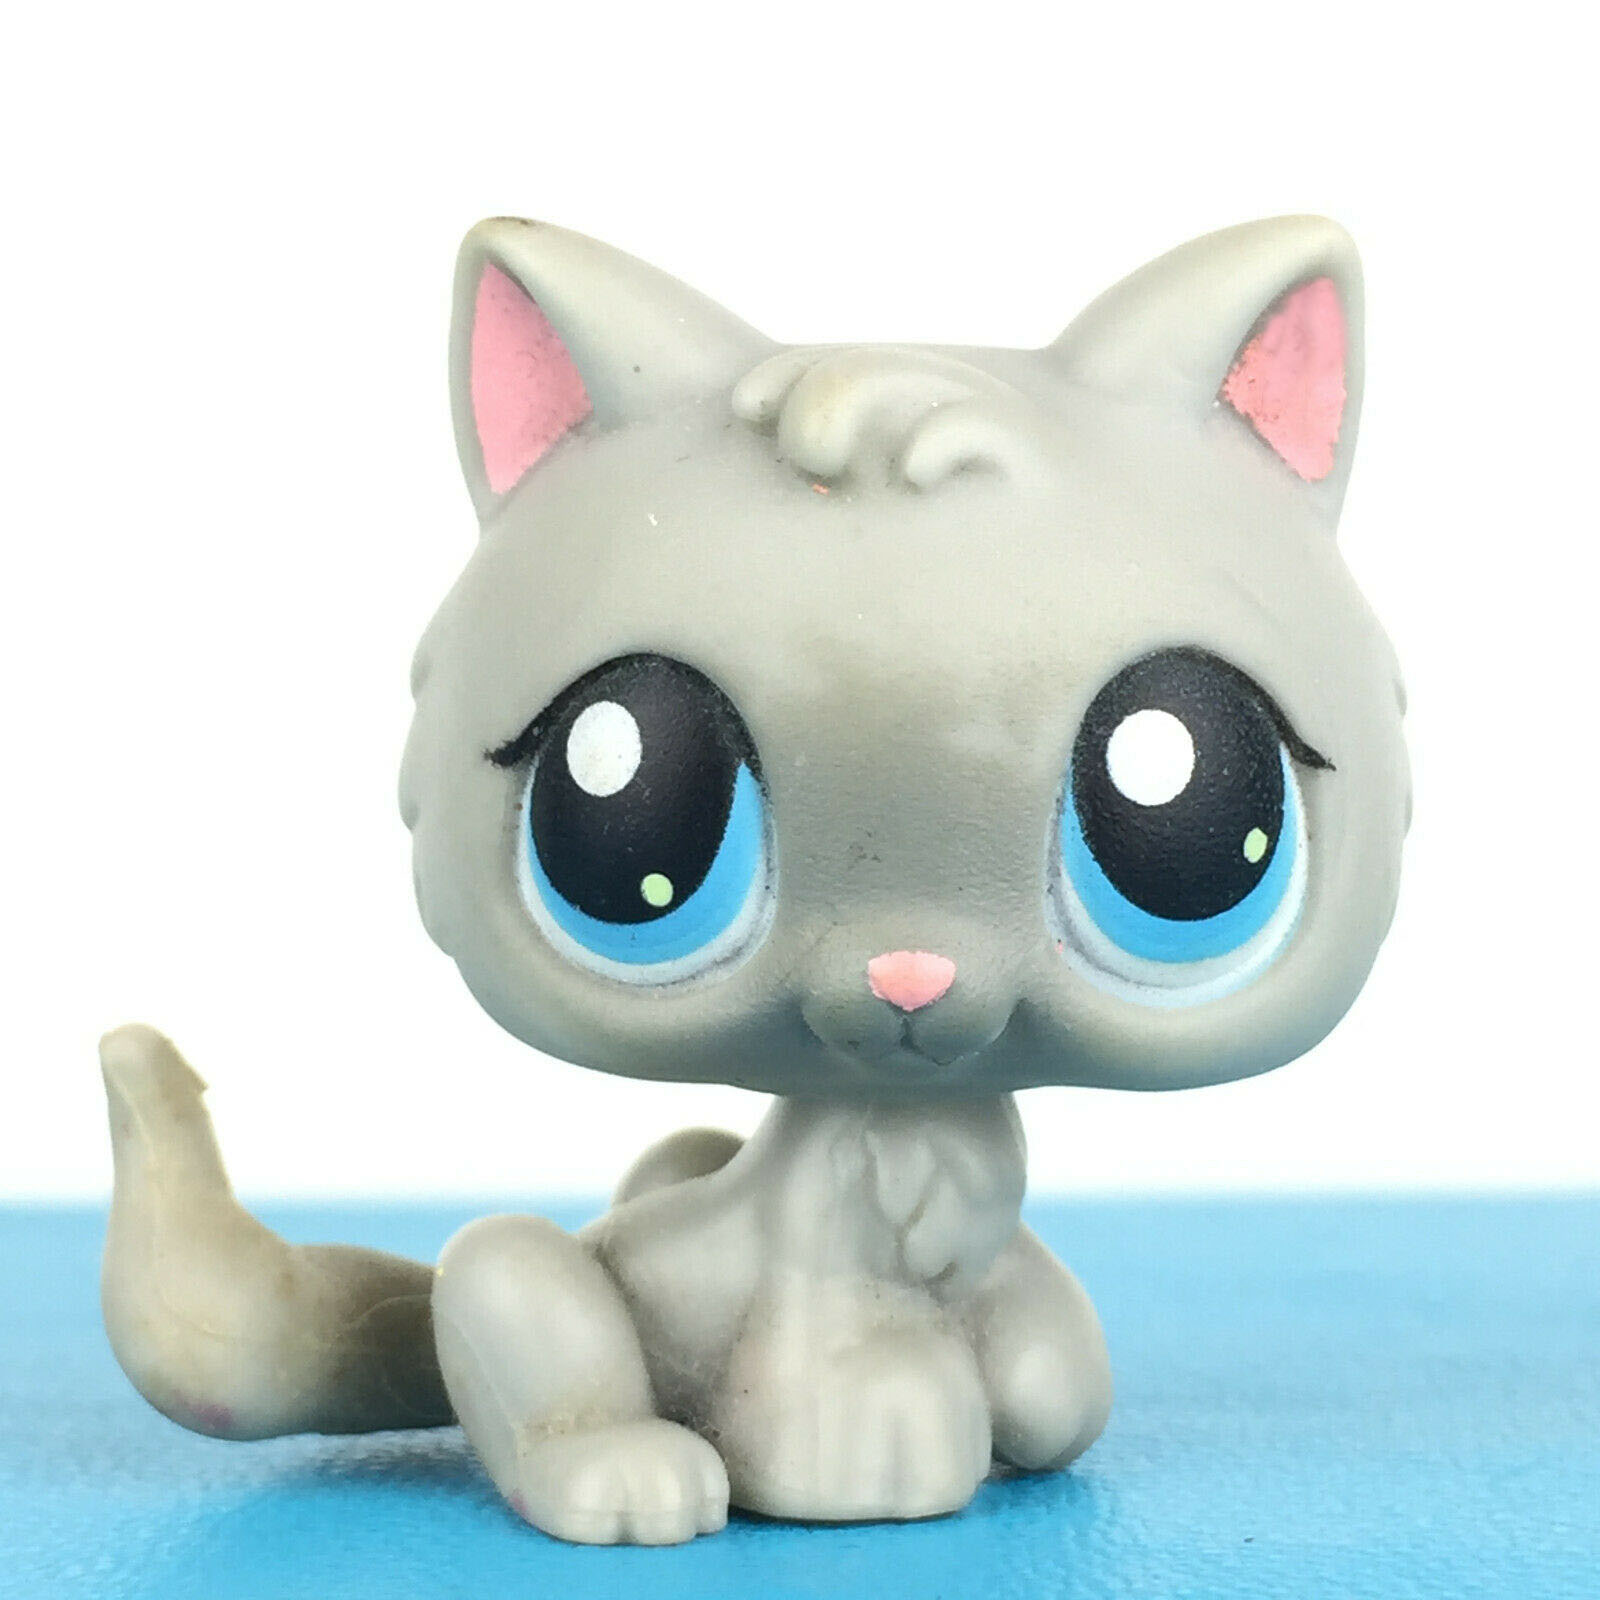 Rare Original Pet Shop Lps Toys Cat #66 Light Grey Baby Kitty Cute Animal Kitten For Kids Collection